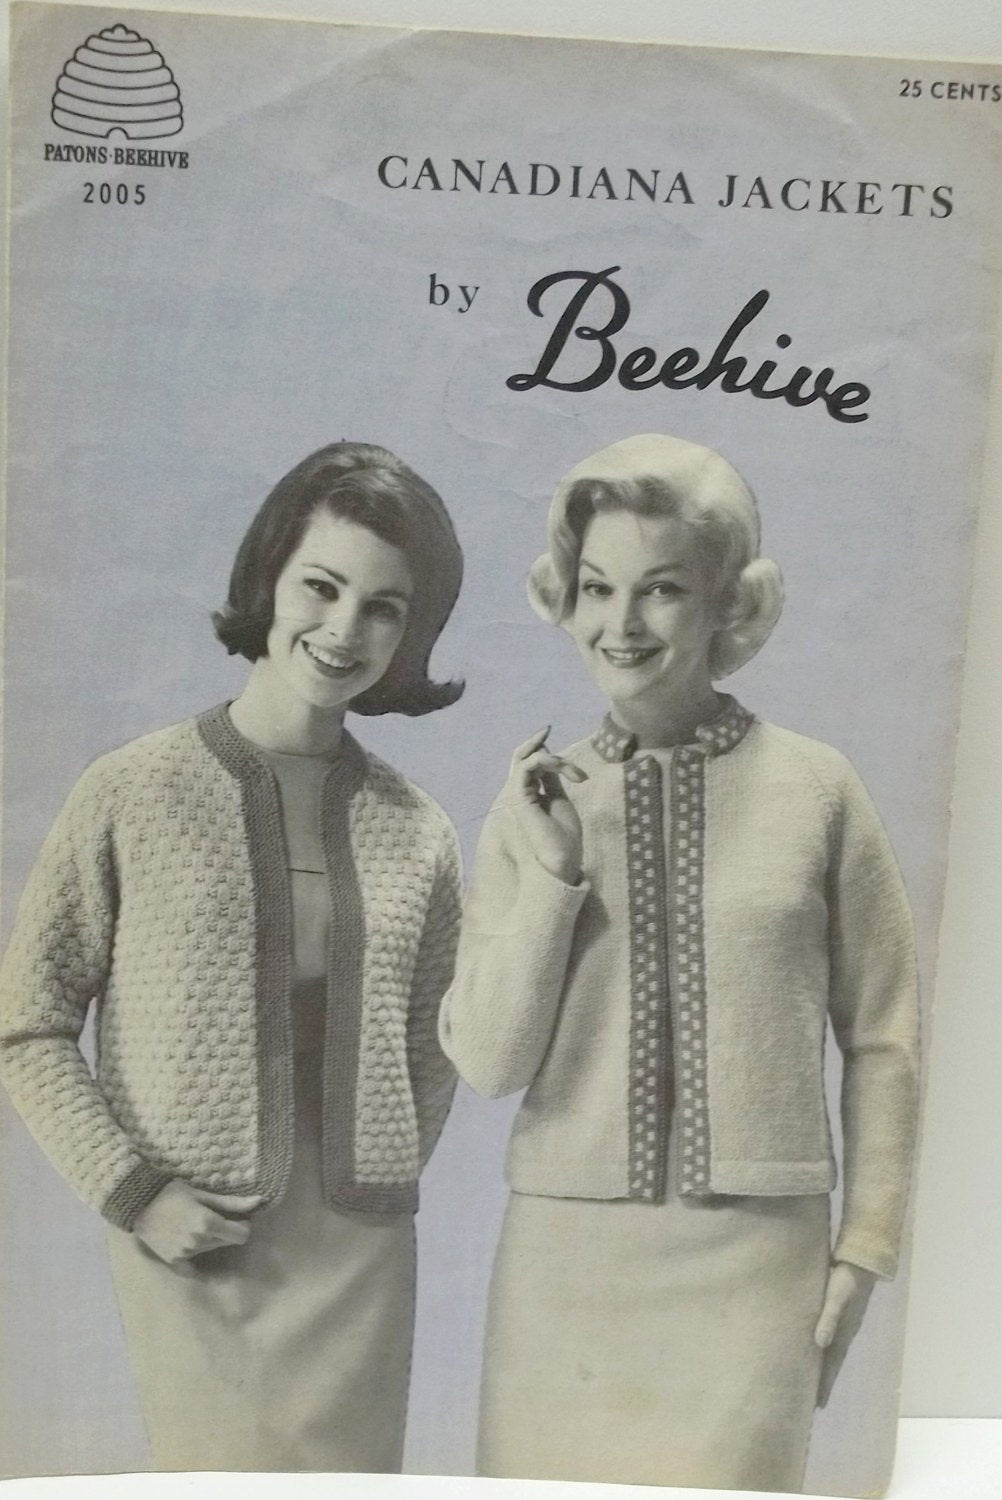 vintage knitting pattern,Canadiana Jackets pattern,woman jacket knitting pattern,Beehive-Patons no 2005 adult size 14 to 20,no 2005